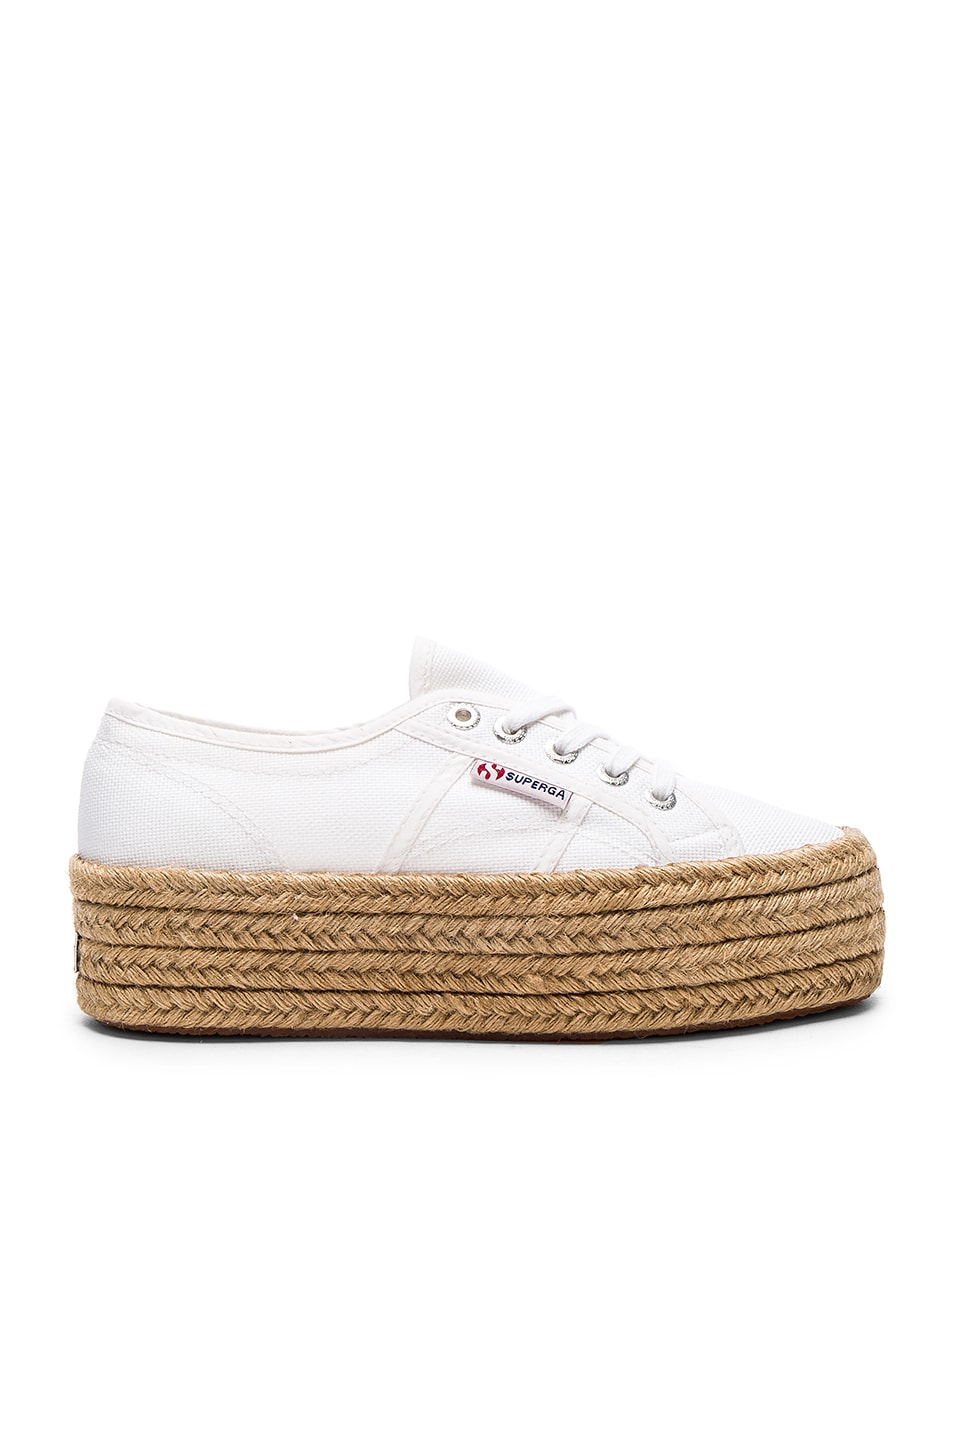 Superga 2790 Cotro Sneaker in White